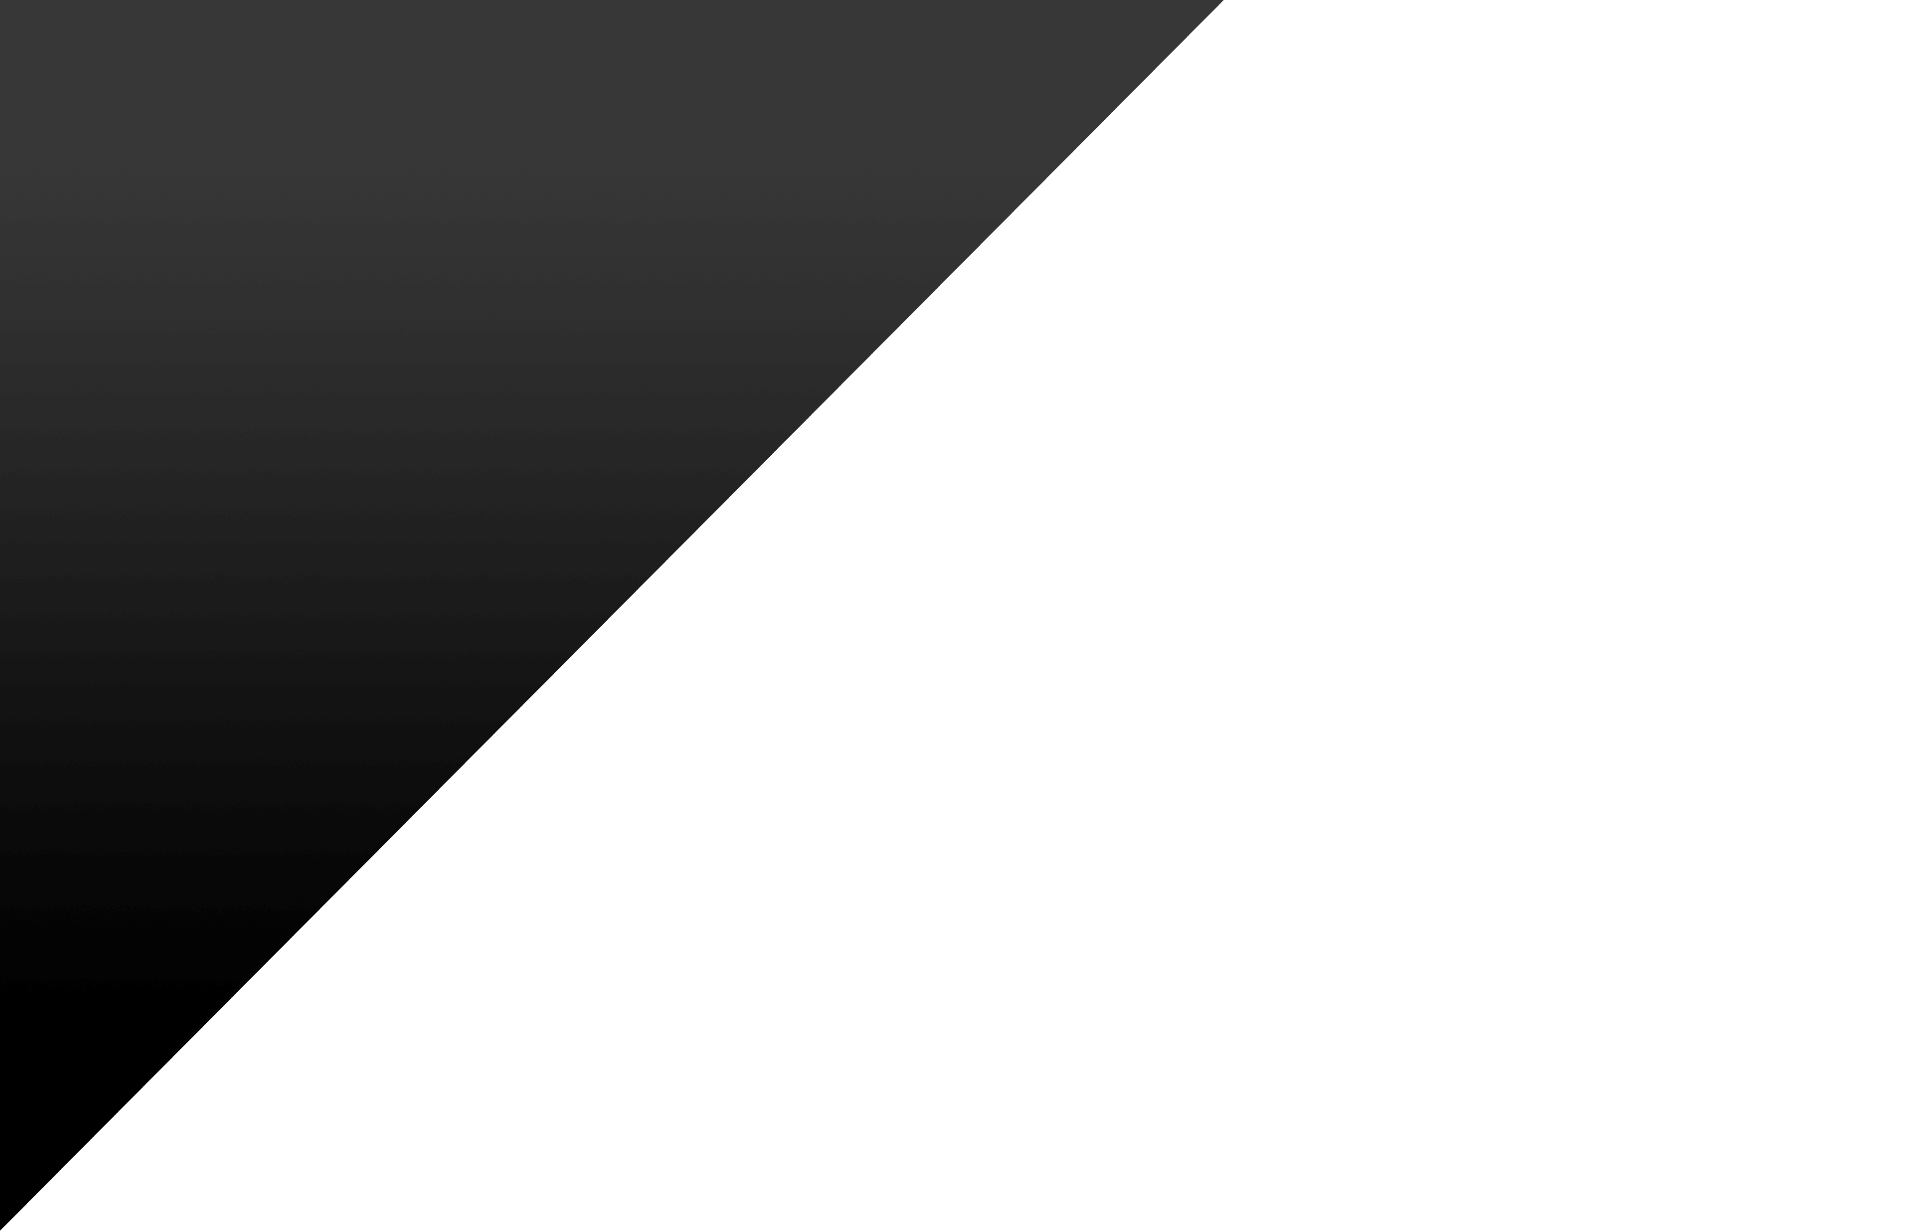 Gradient grey triangle background image